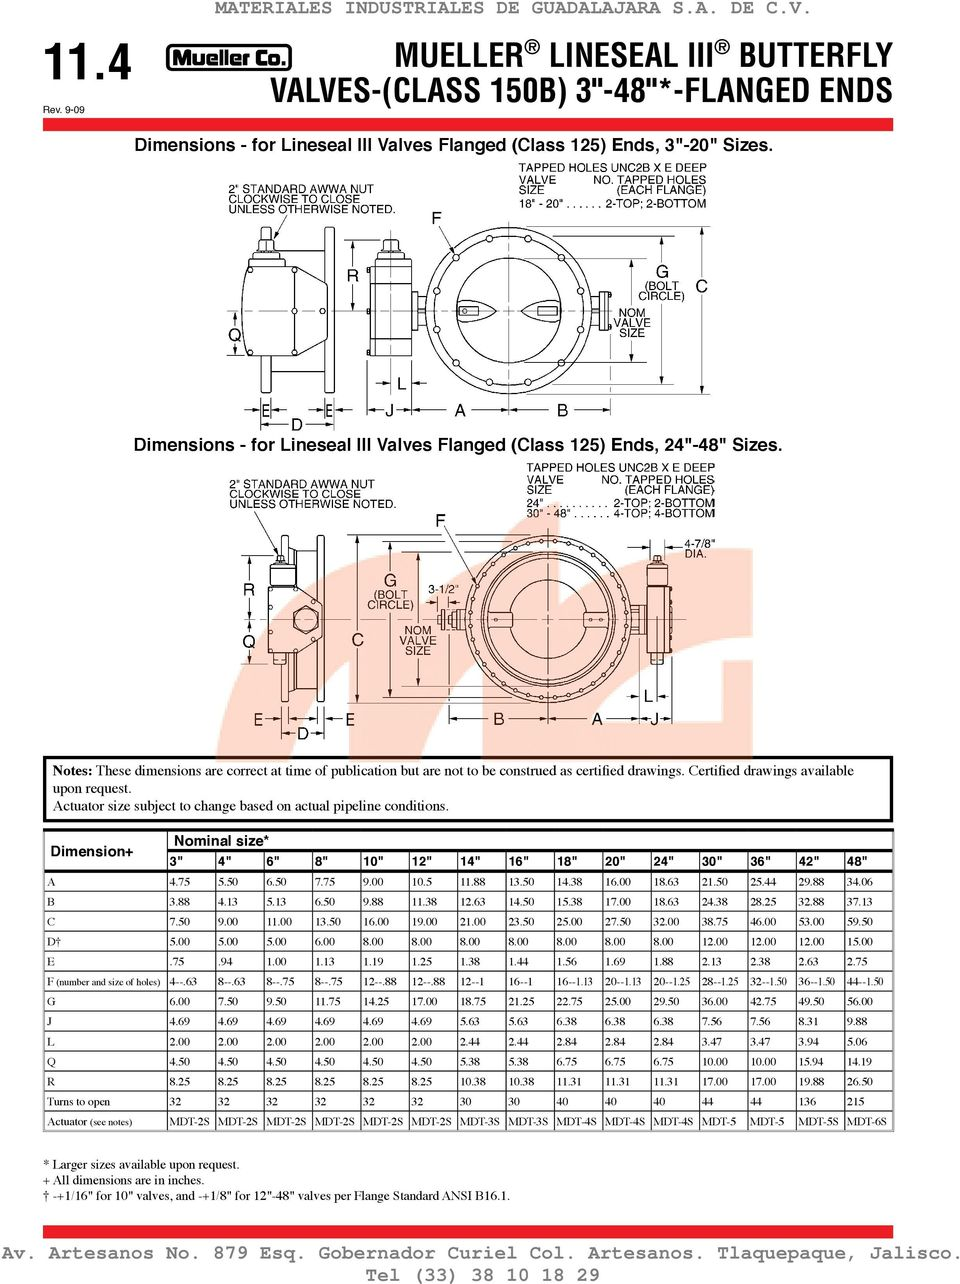 "Certified drawings available upon request. Dimension+ Nominal size* 3"" 4"" 6"" 8"" 10"" 12"" 14"" 16"" 18"" 20"" 24"" 30"" 36"" 42"" 48"" A 4.75 5.50 6.50 7.75 9.00 10.5 11.88 13.50 14.38 16.00 18.63 21.50 25."